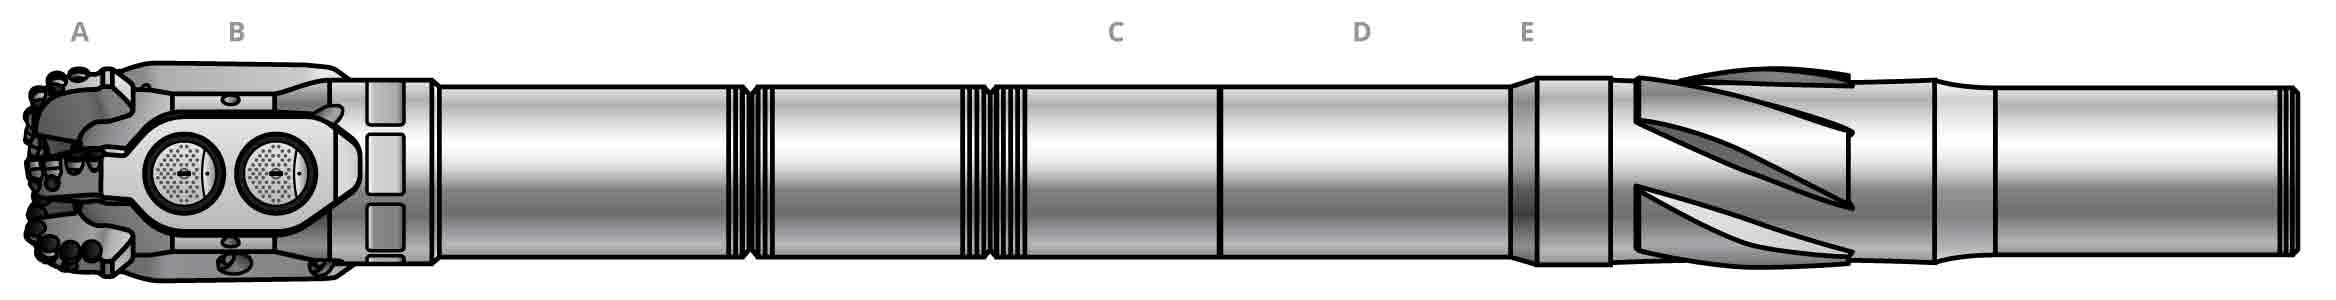 Simplified side-view illustration of the core components of a NeoSteer CLx at-bit rotary steerable system BHA